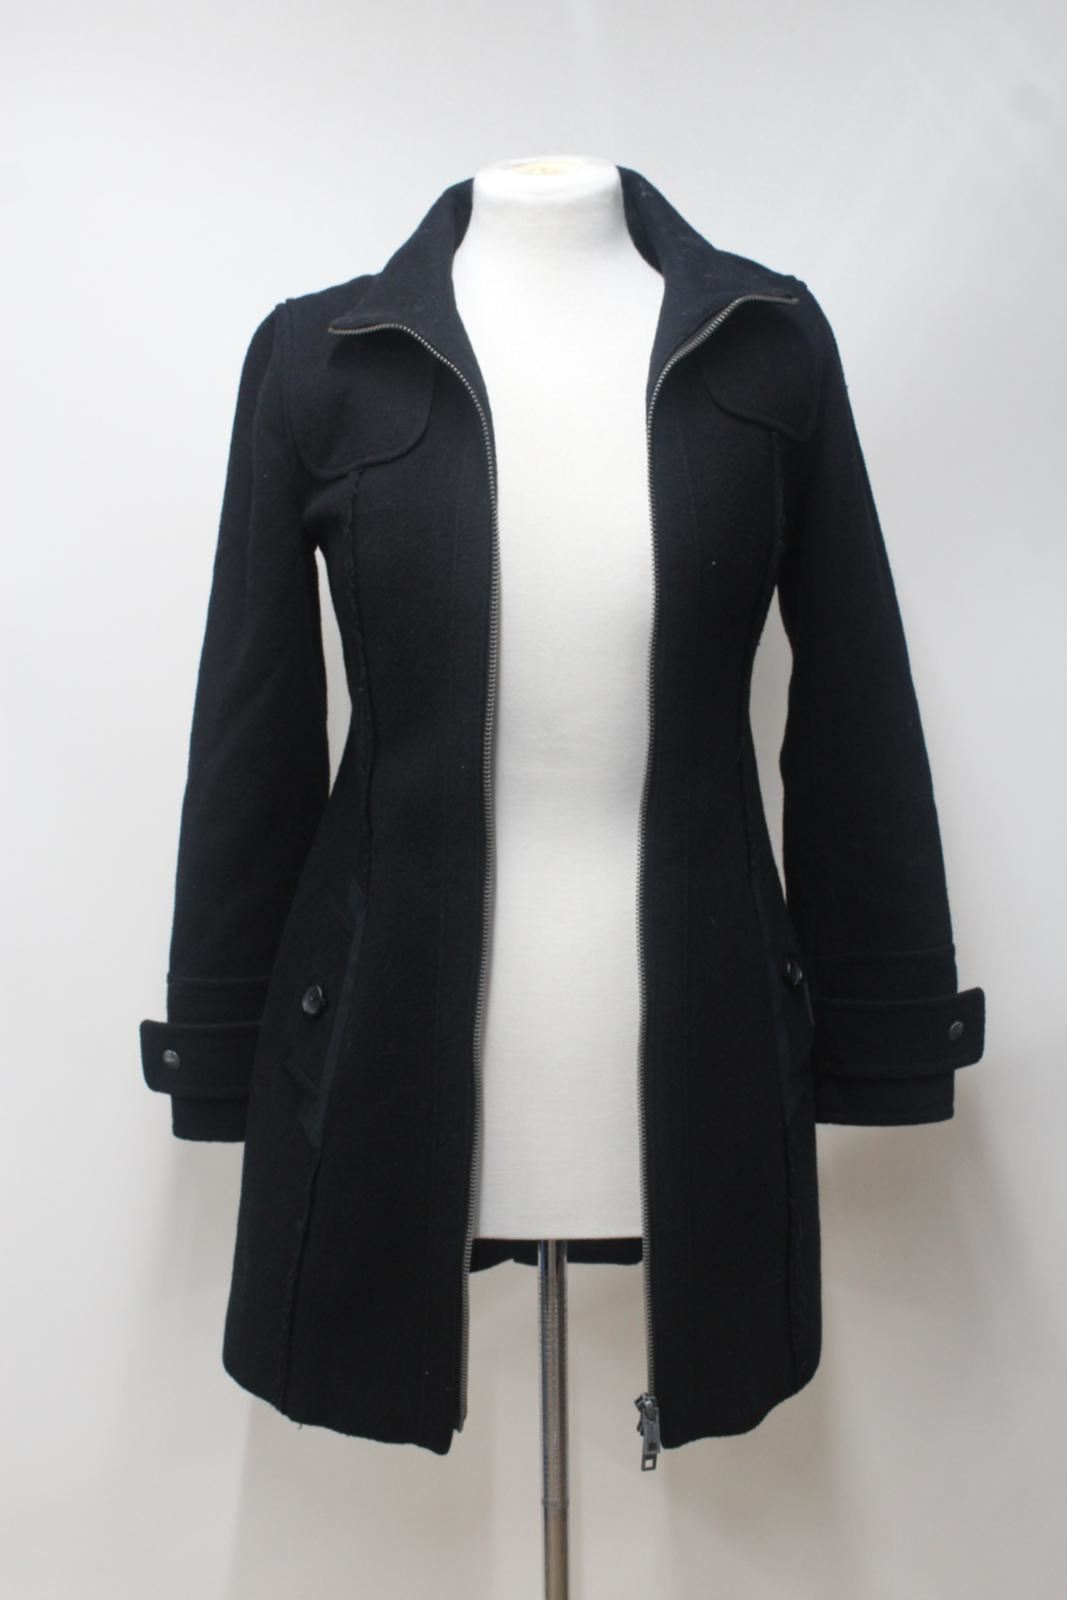 Zip Collar Ladies Coat Sleeve Long Jeans Dkny Xs Wool Blend Up Black Stand 6XAqZTnwp